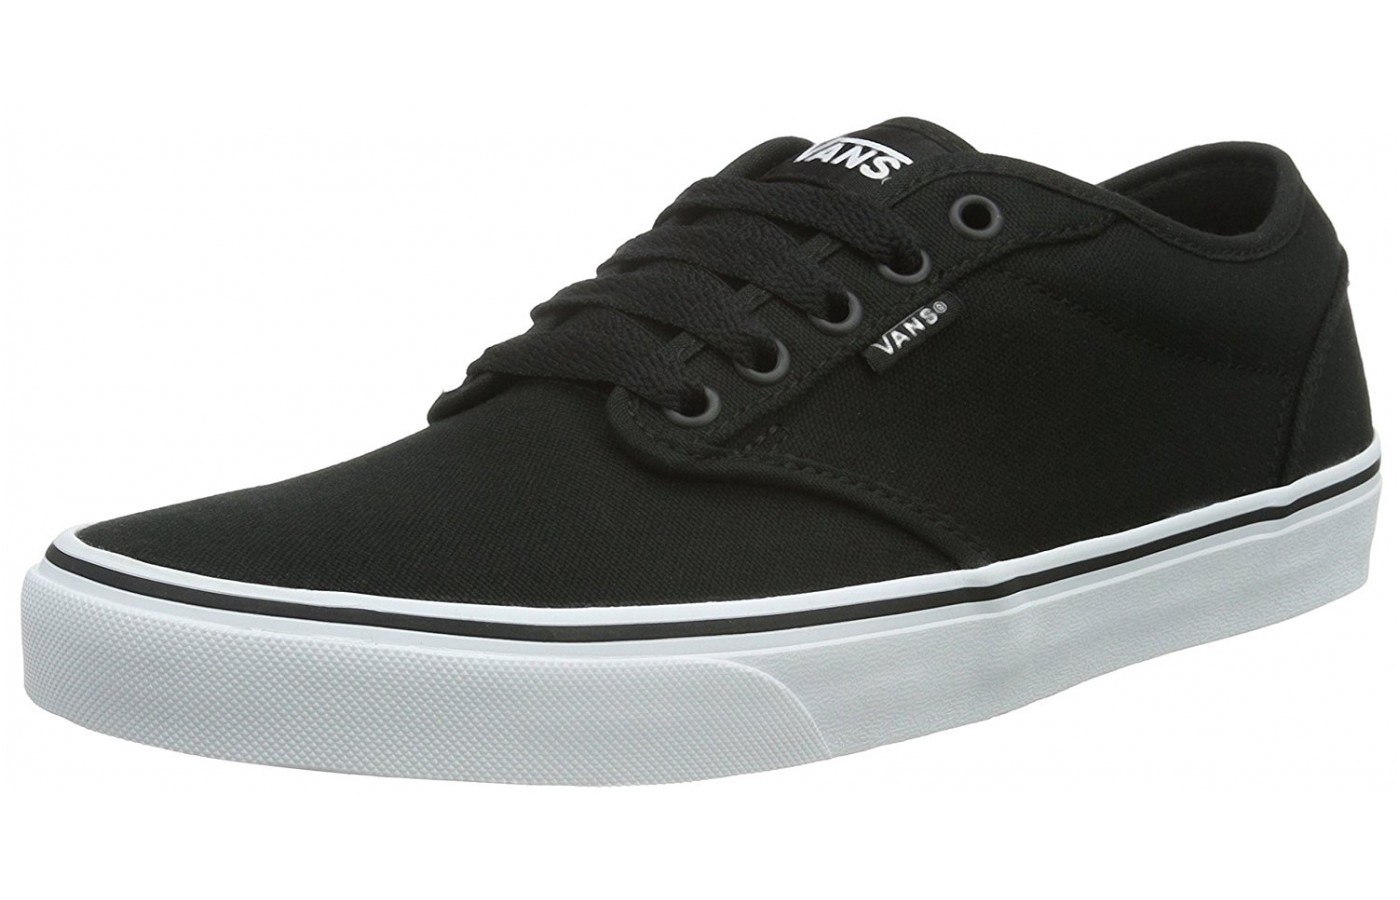 Vans Atwood Angled View